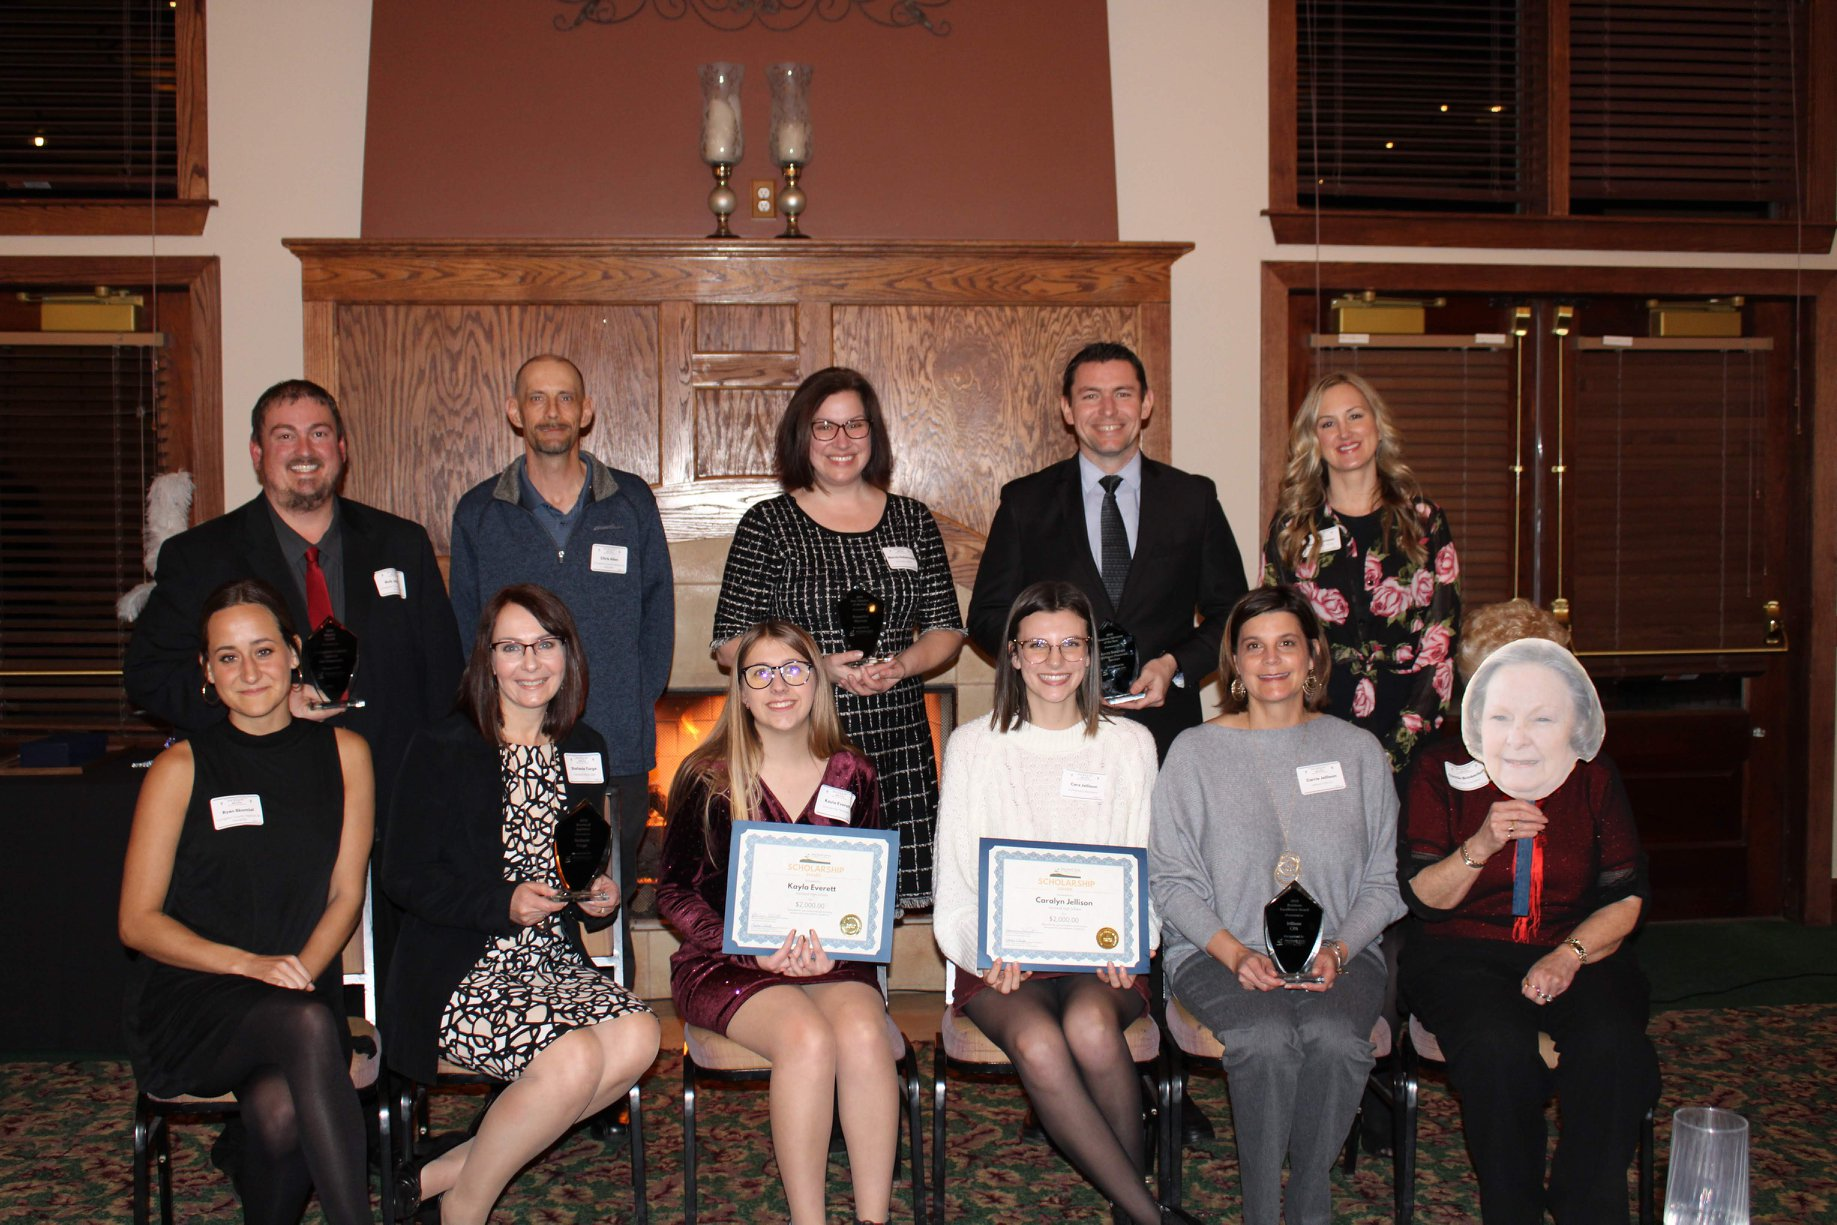 Hartland Chamber Honors Members at Annual Awards Dinner